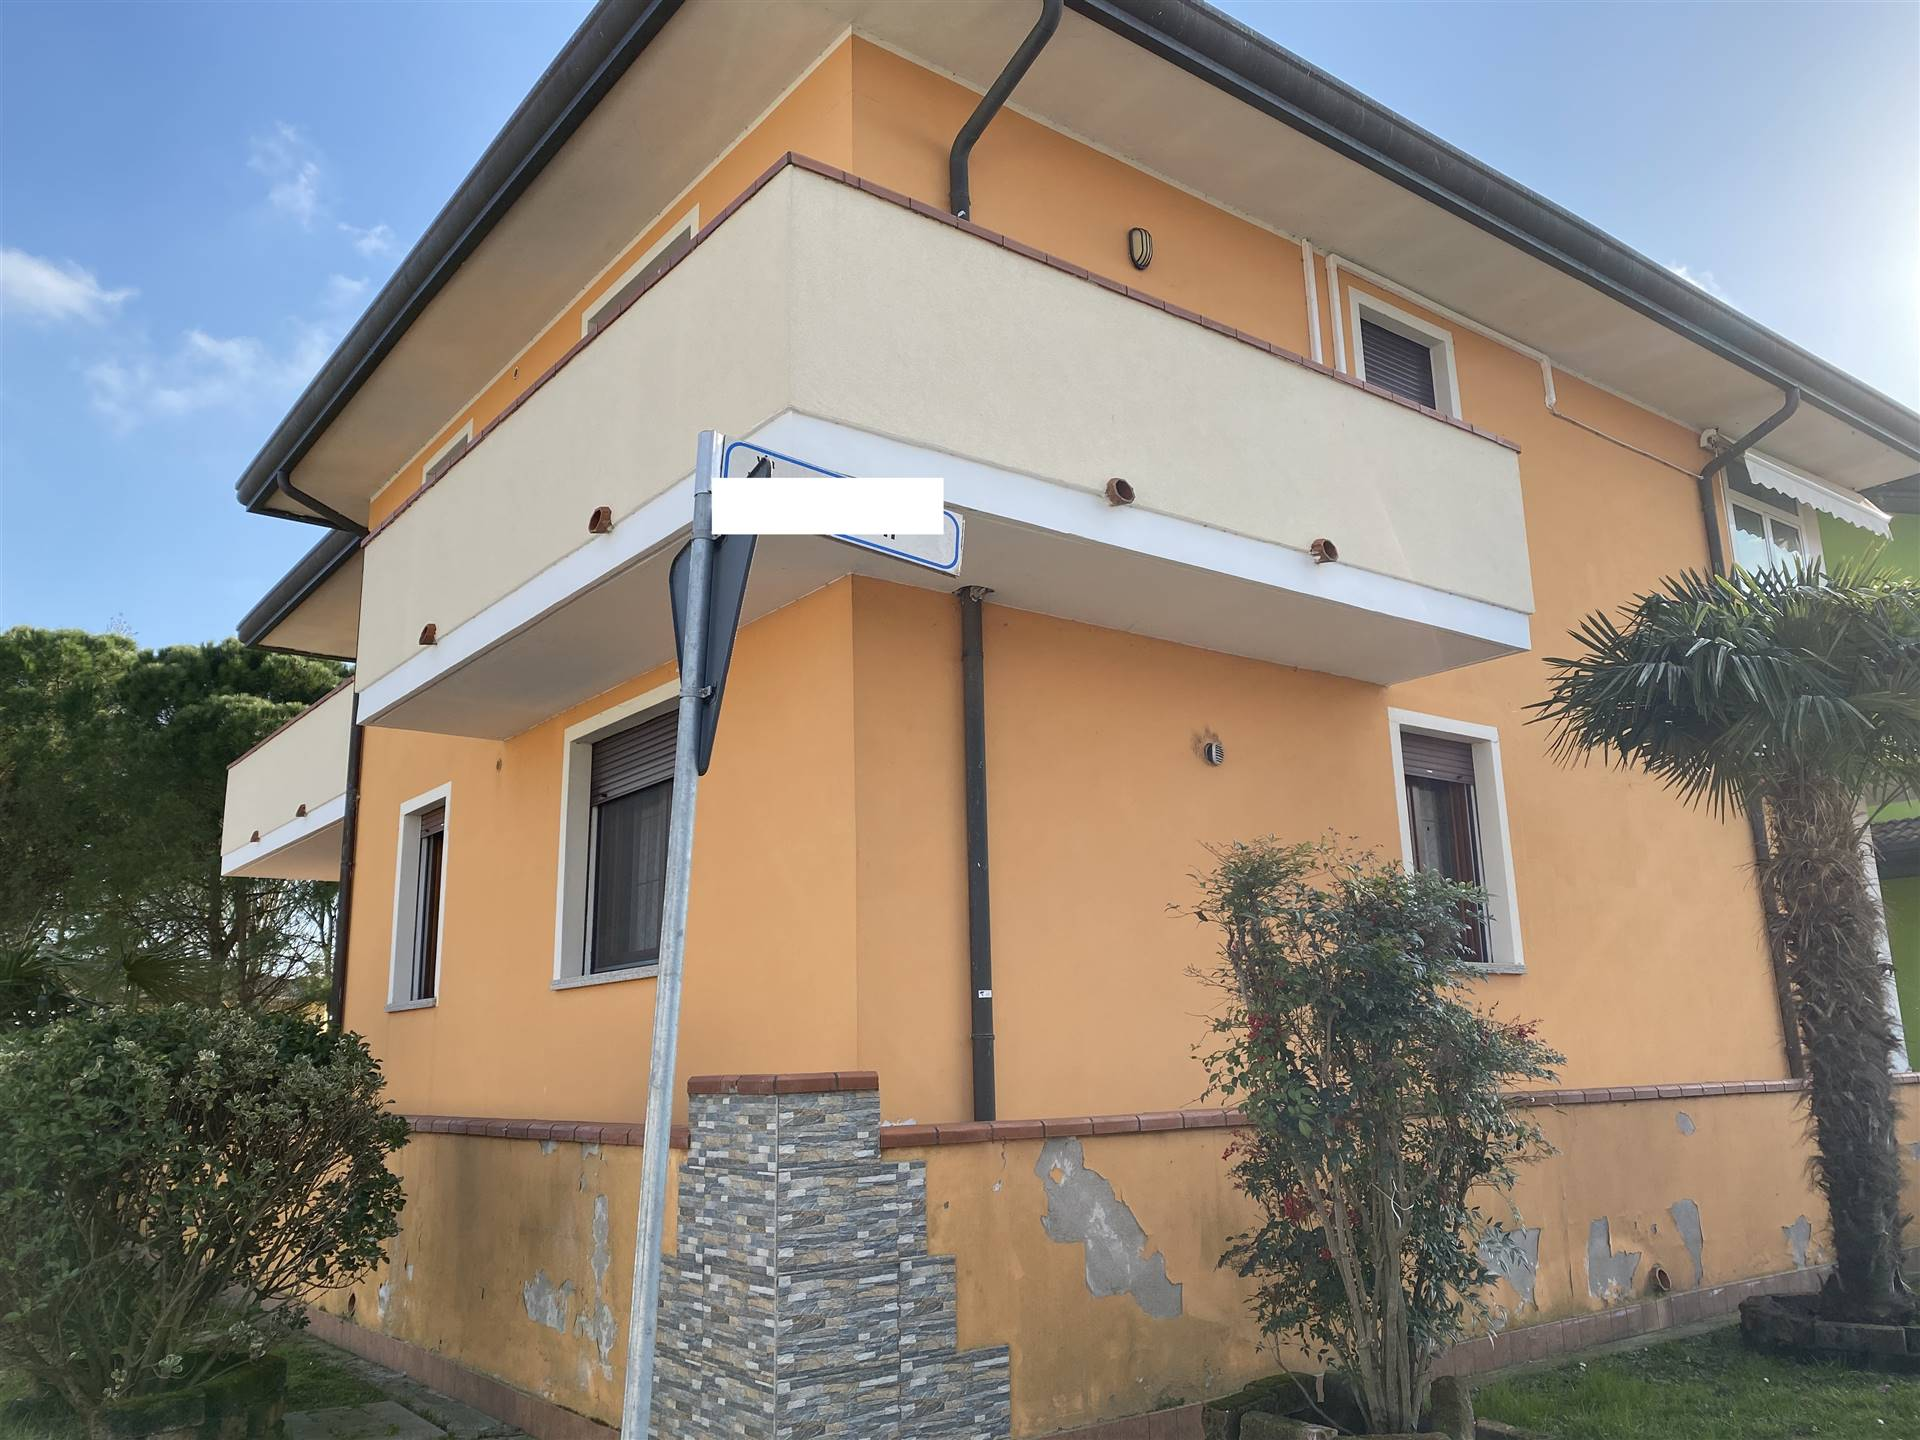 DONZELLA, PORTO TOLLE, Detached house for sale of 300 Sq. mt., Good condition, Heating Individual heating system, Energetic class: F, placed at